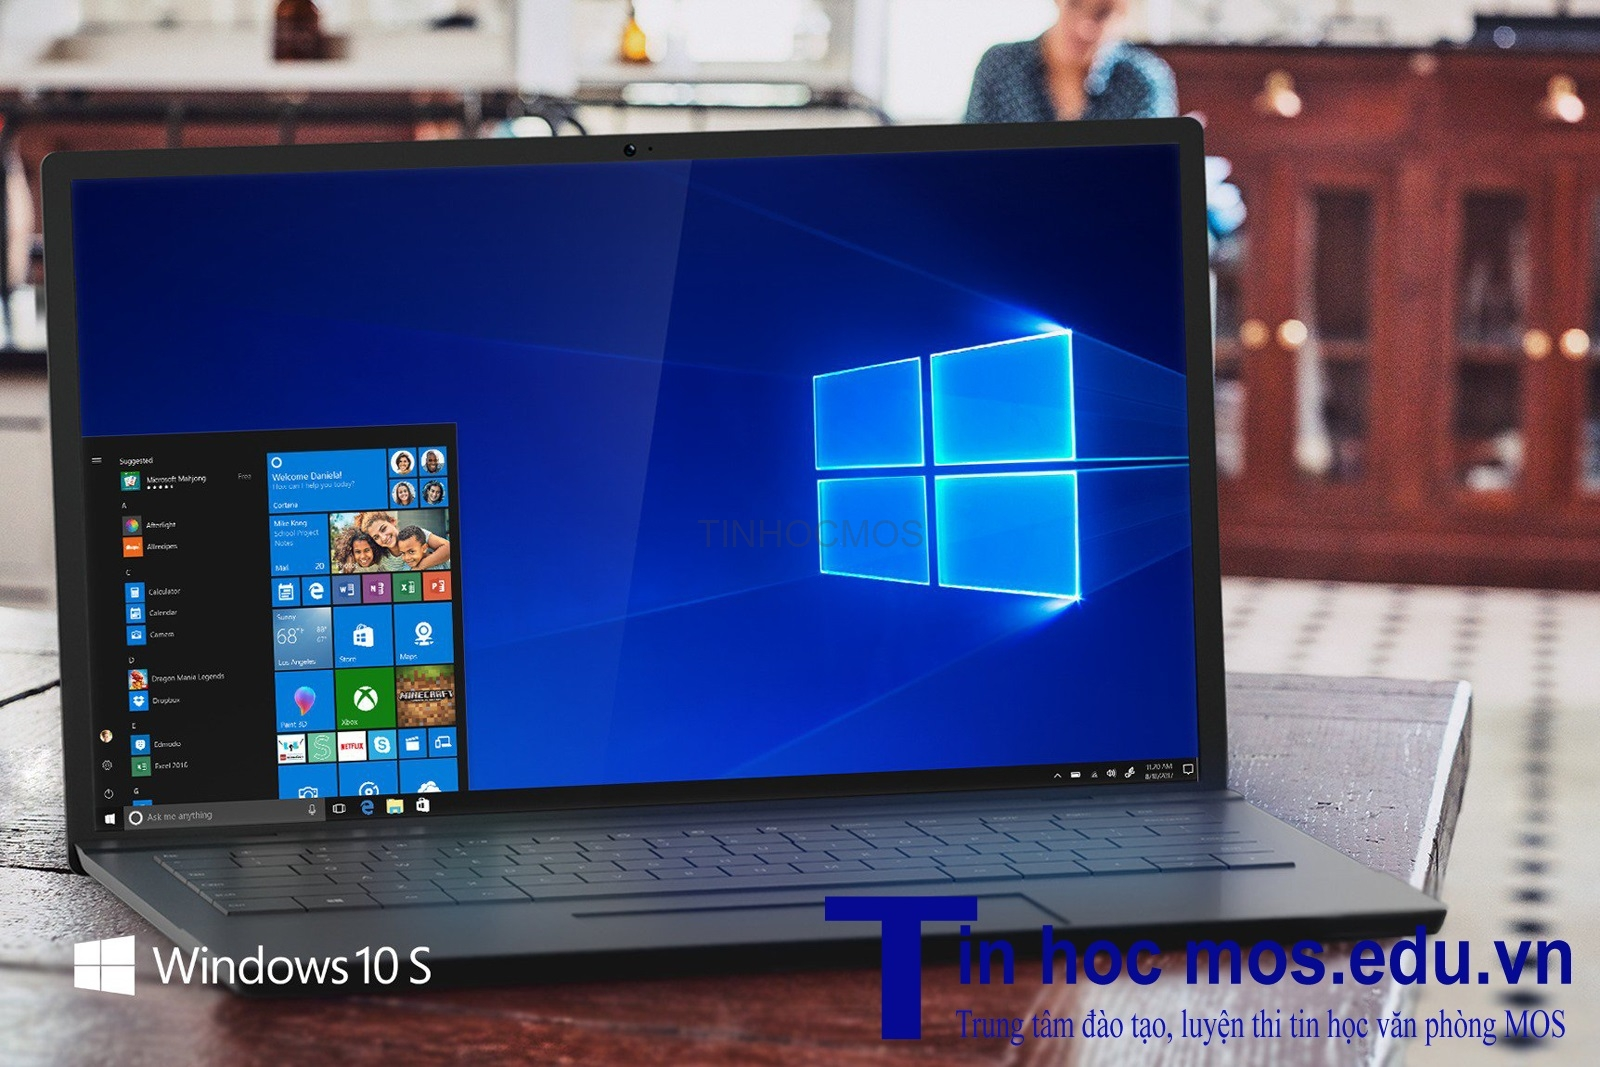 6 dieu can biet ve windows 10 s